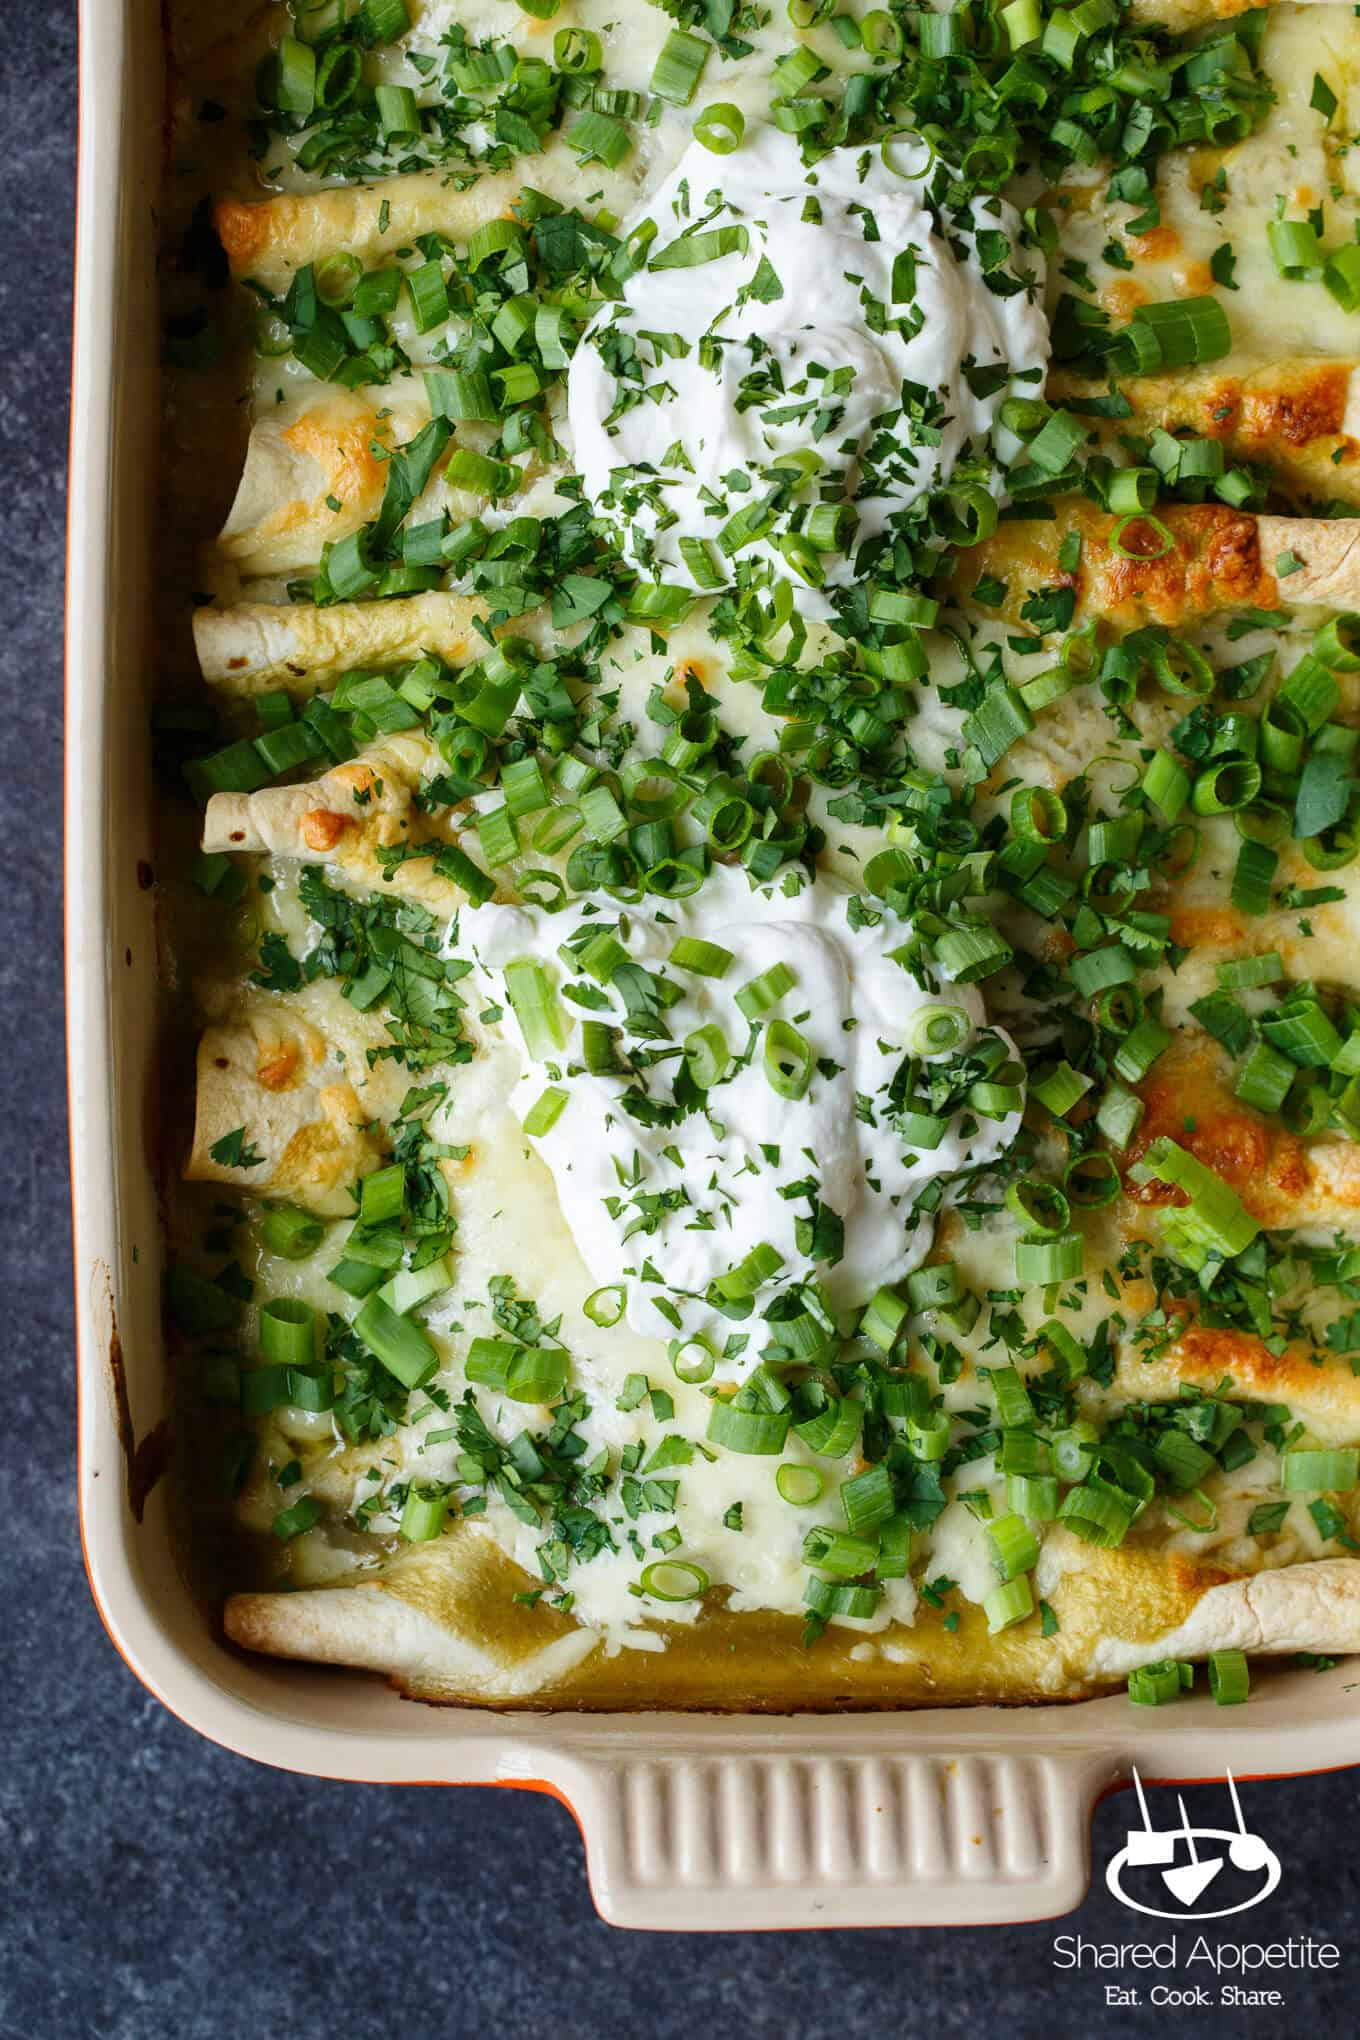 Hidden Veggie Chicken Enchiladas with Zucchini, Spinach, and Corn in a Green Chile Sauce are Family Friendly! | sharedappetite.com